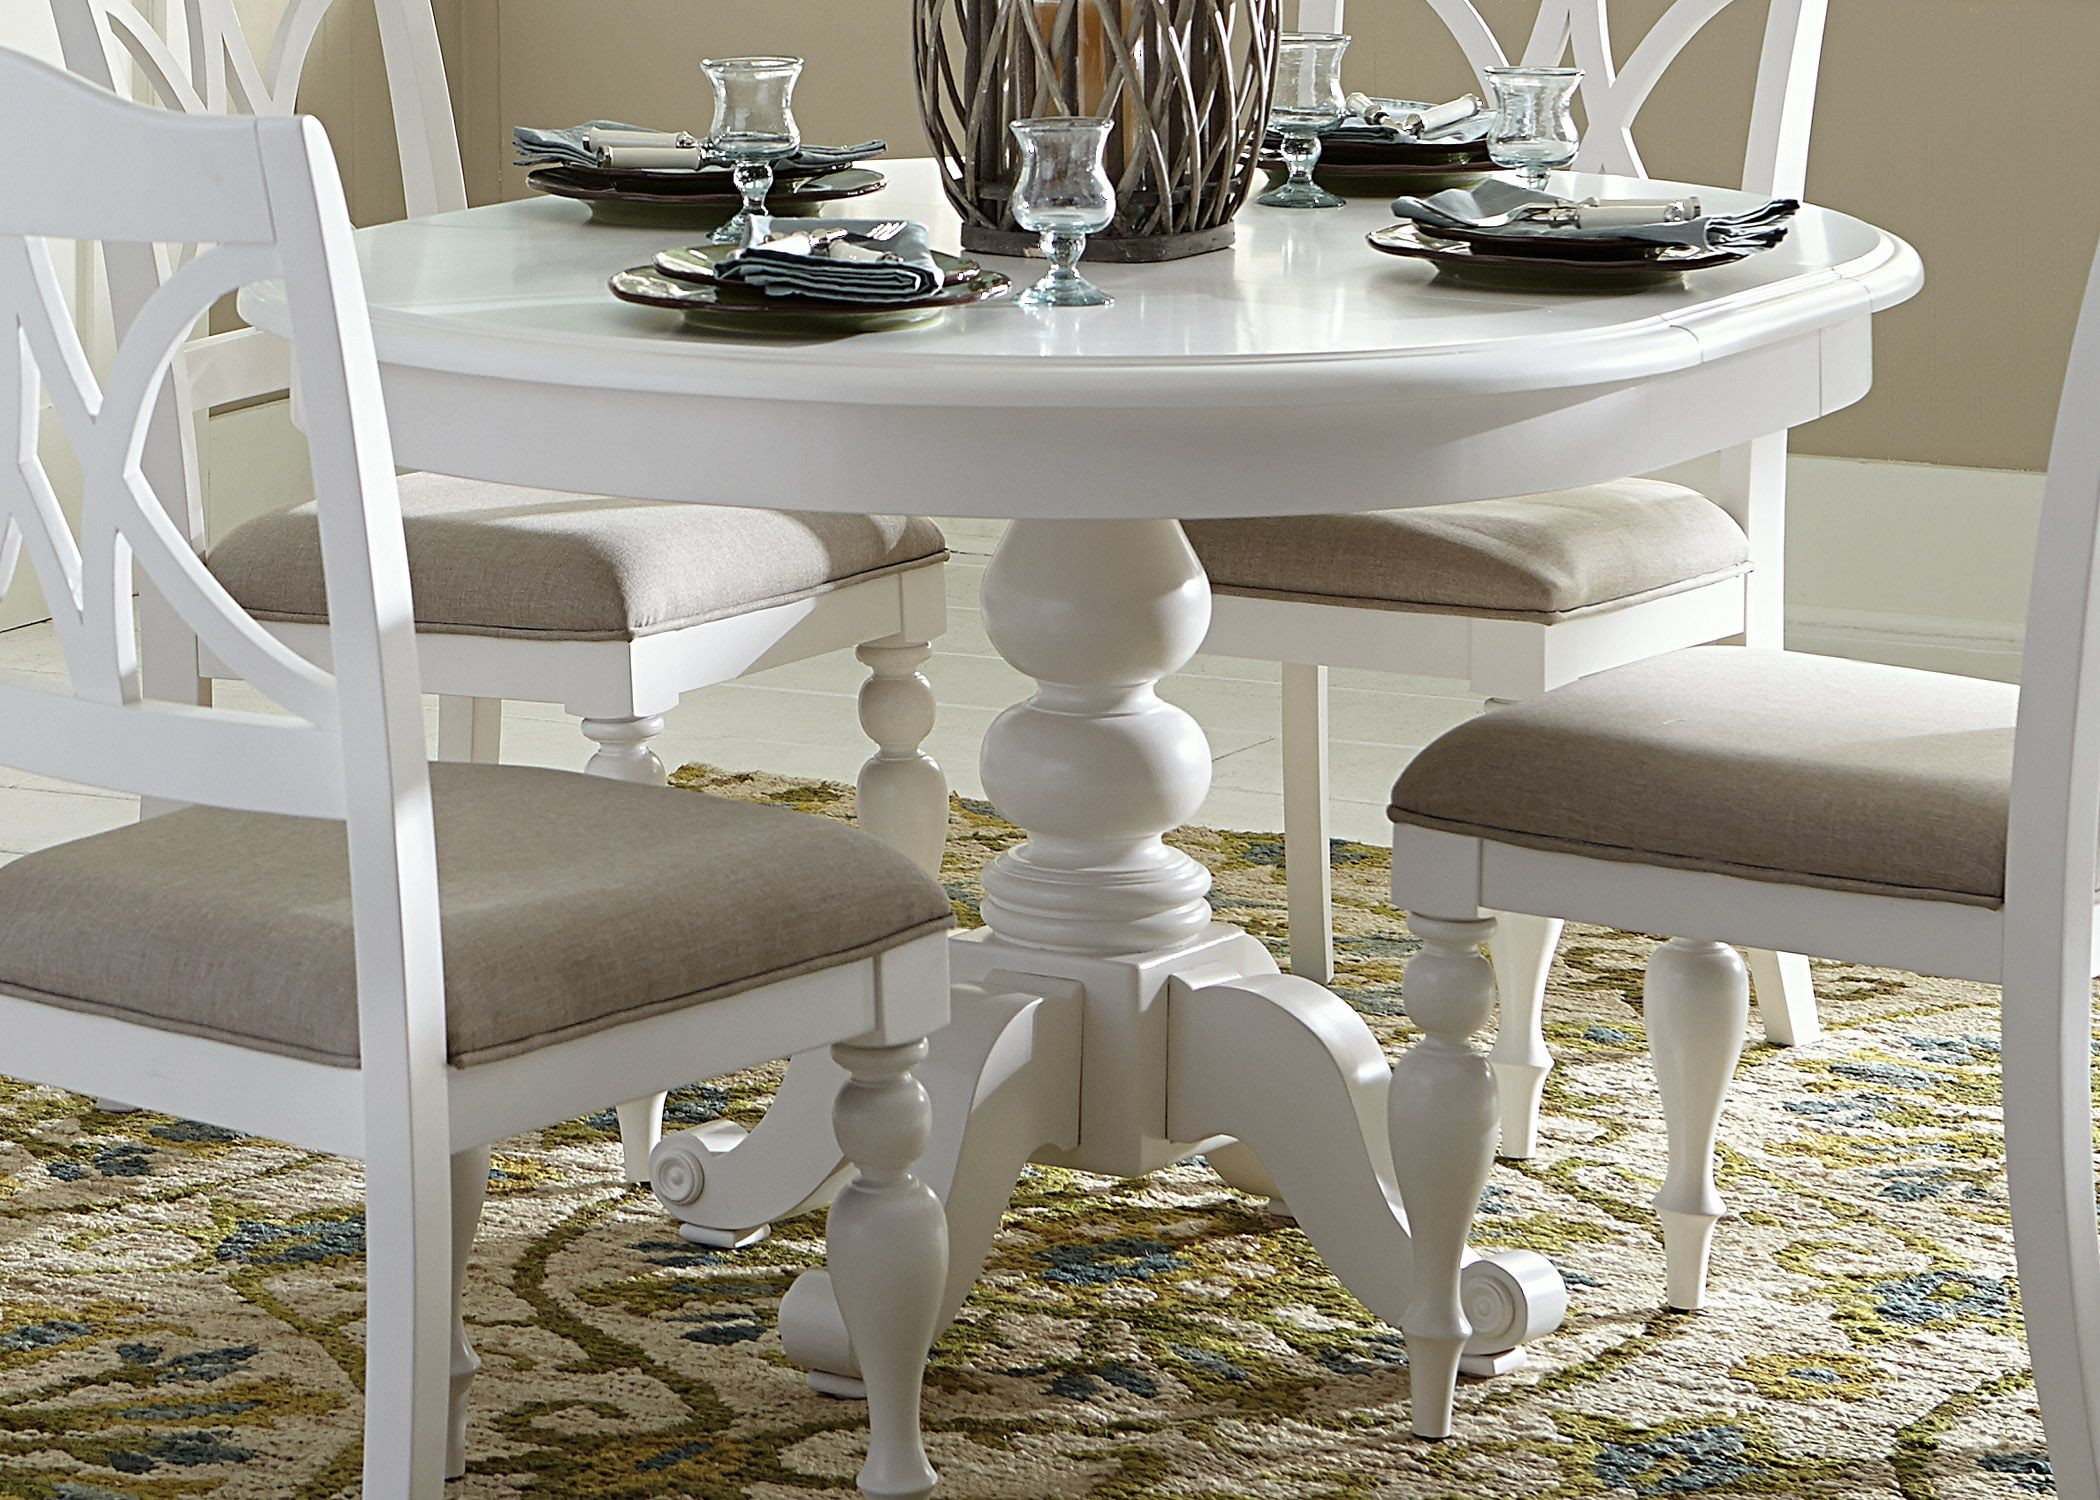 summer house oyster white oyster white round pedestal dining table from liberty 607 t4254 p4254. Black Bedroom Furniture Sets. Home Design Ideas